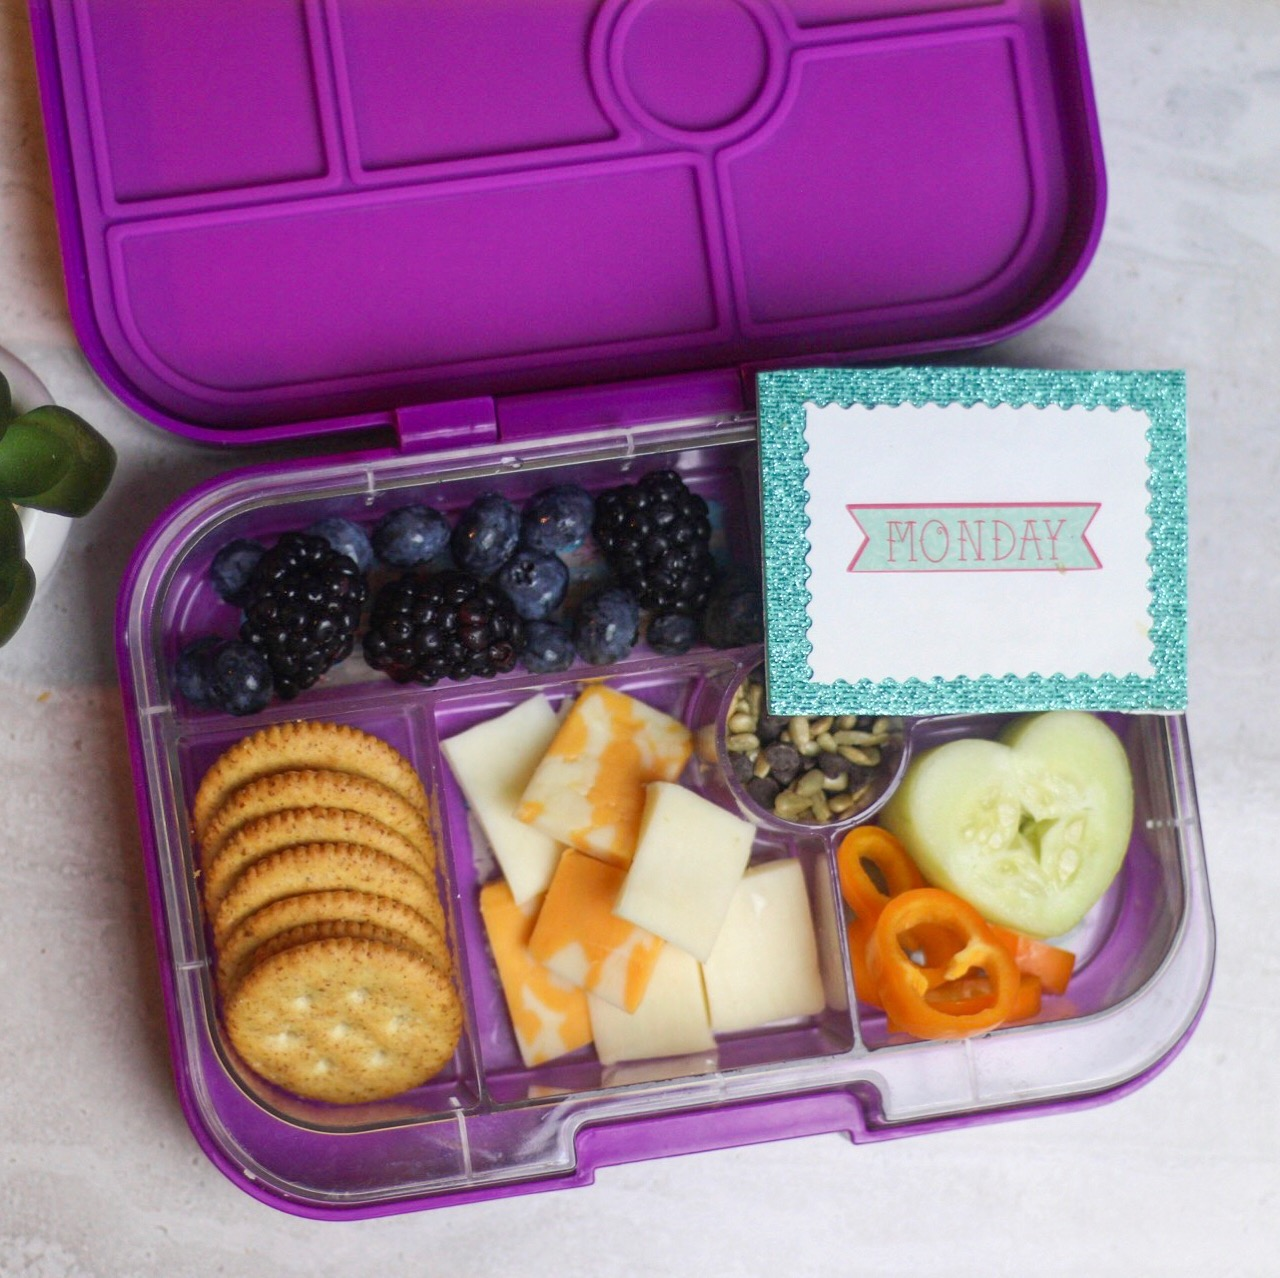 quick fav's are ALWAYS a go-to! - Assorted cheese, whole wheat crackers, cucumbers, sweet orange peppers, sunflower seeds and chocolate chips, blackberries, and blueberries!